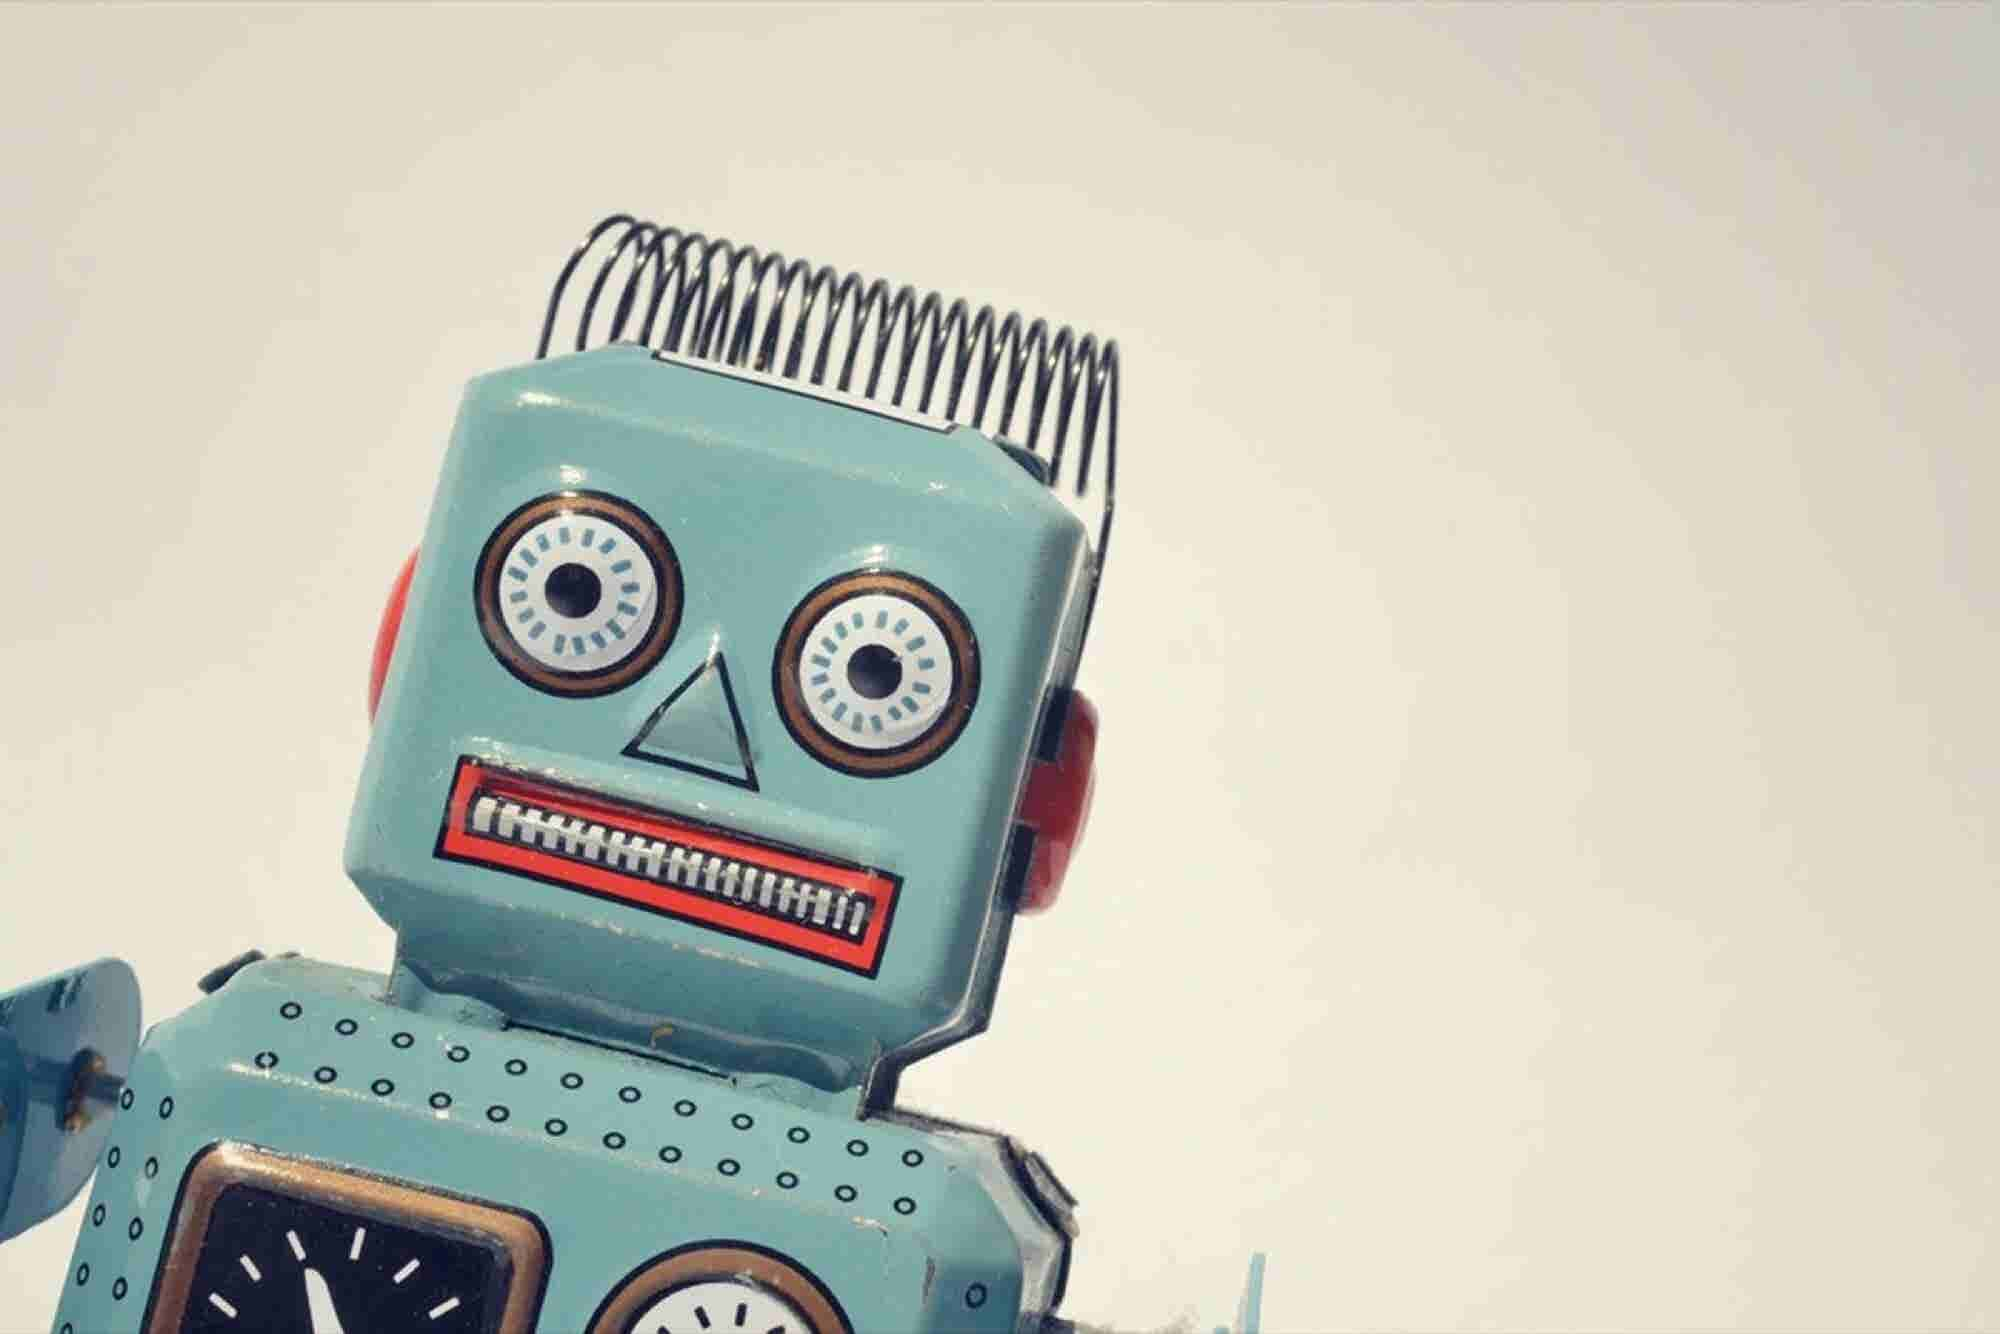 7 Ways Chatbots Can Benefit Your Marketing Strategy